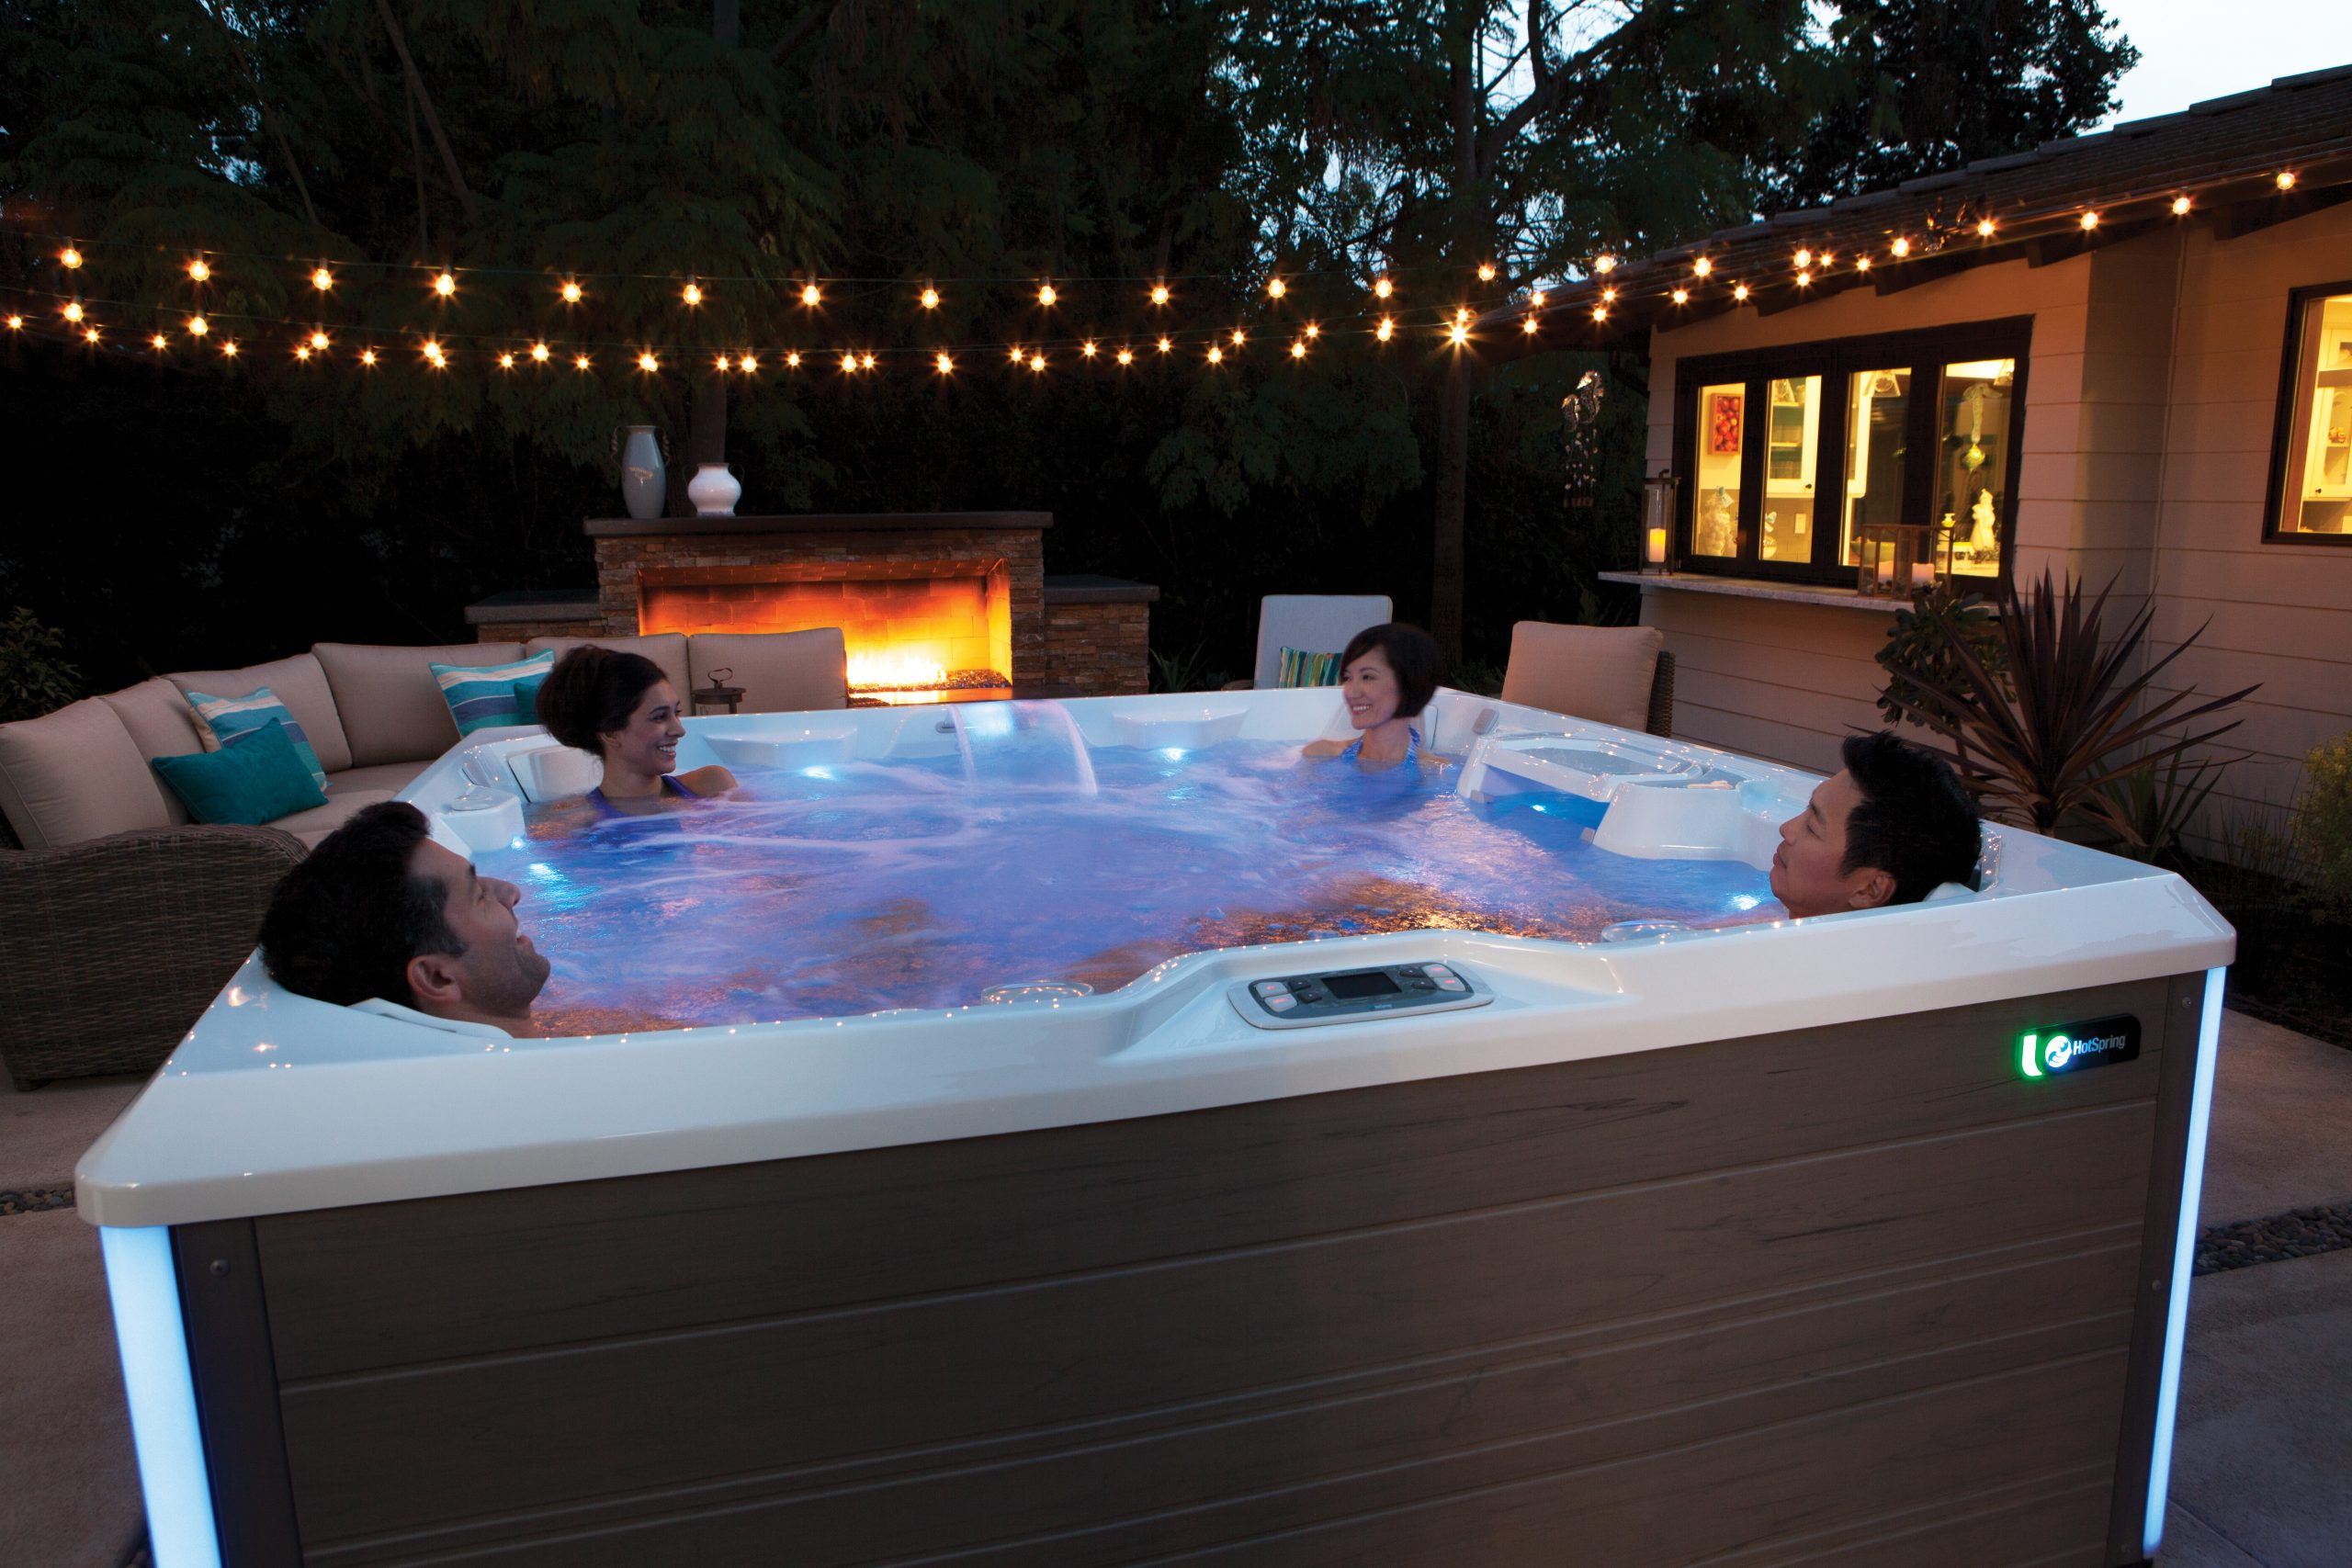 5 Helpful Tips for New Hot Tub Users